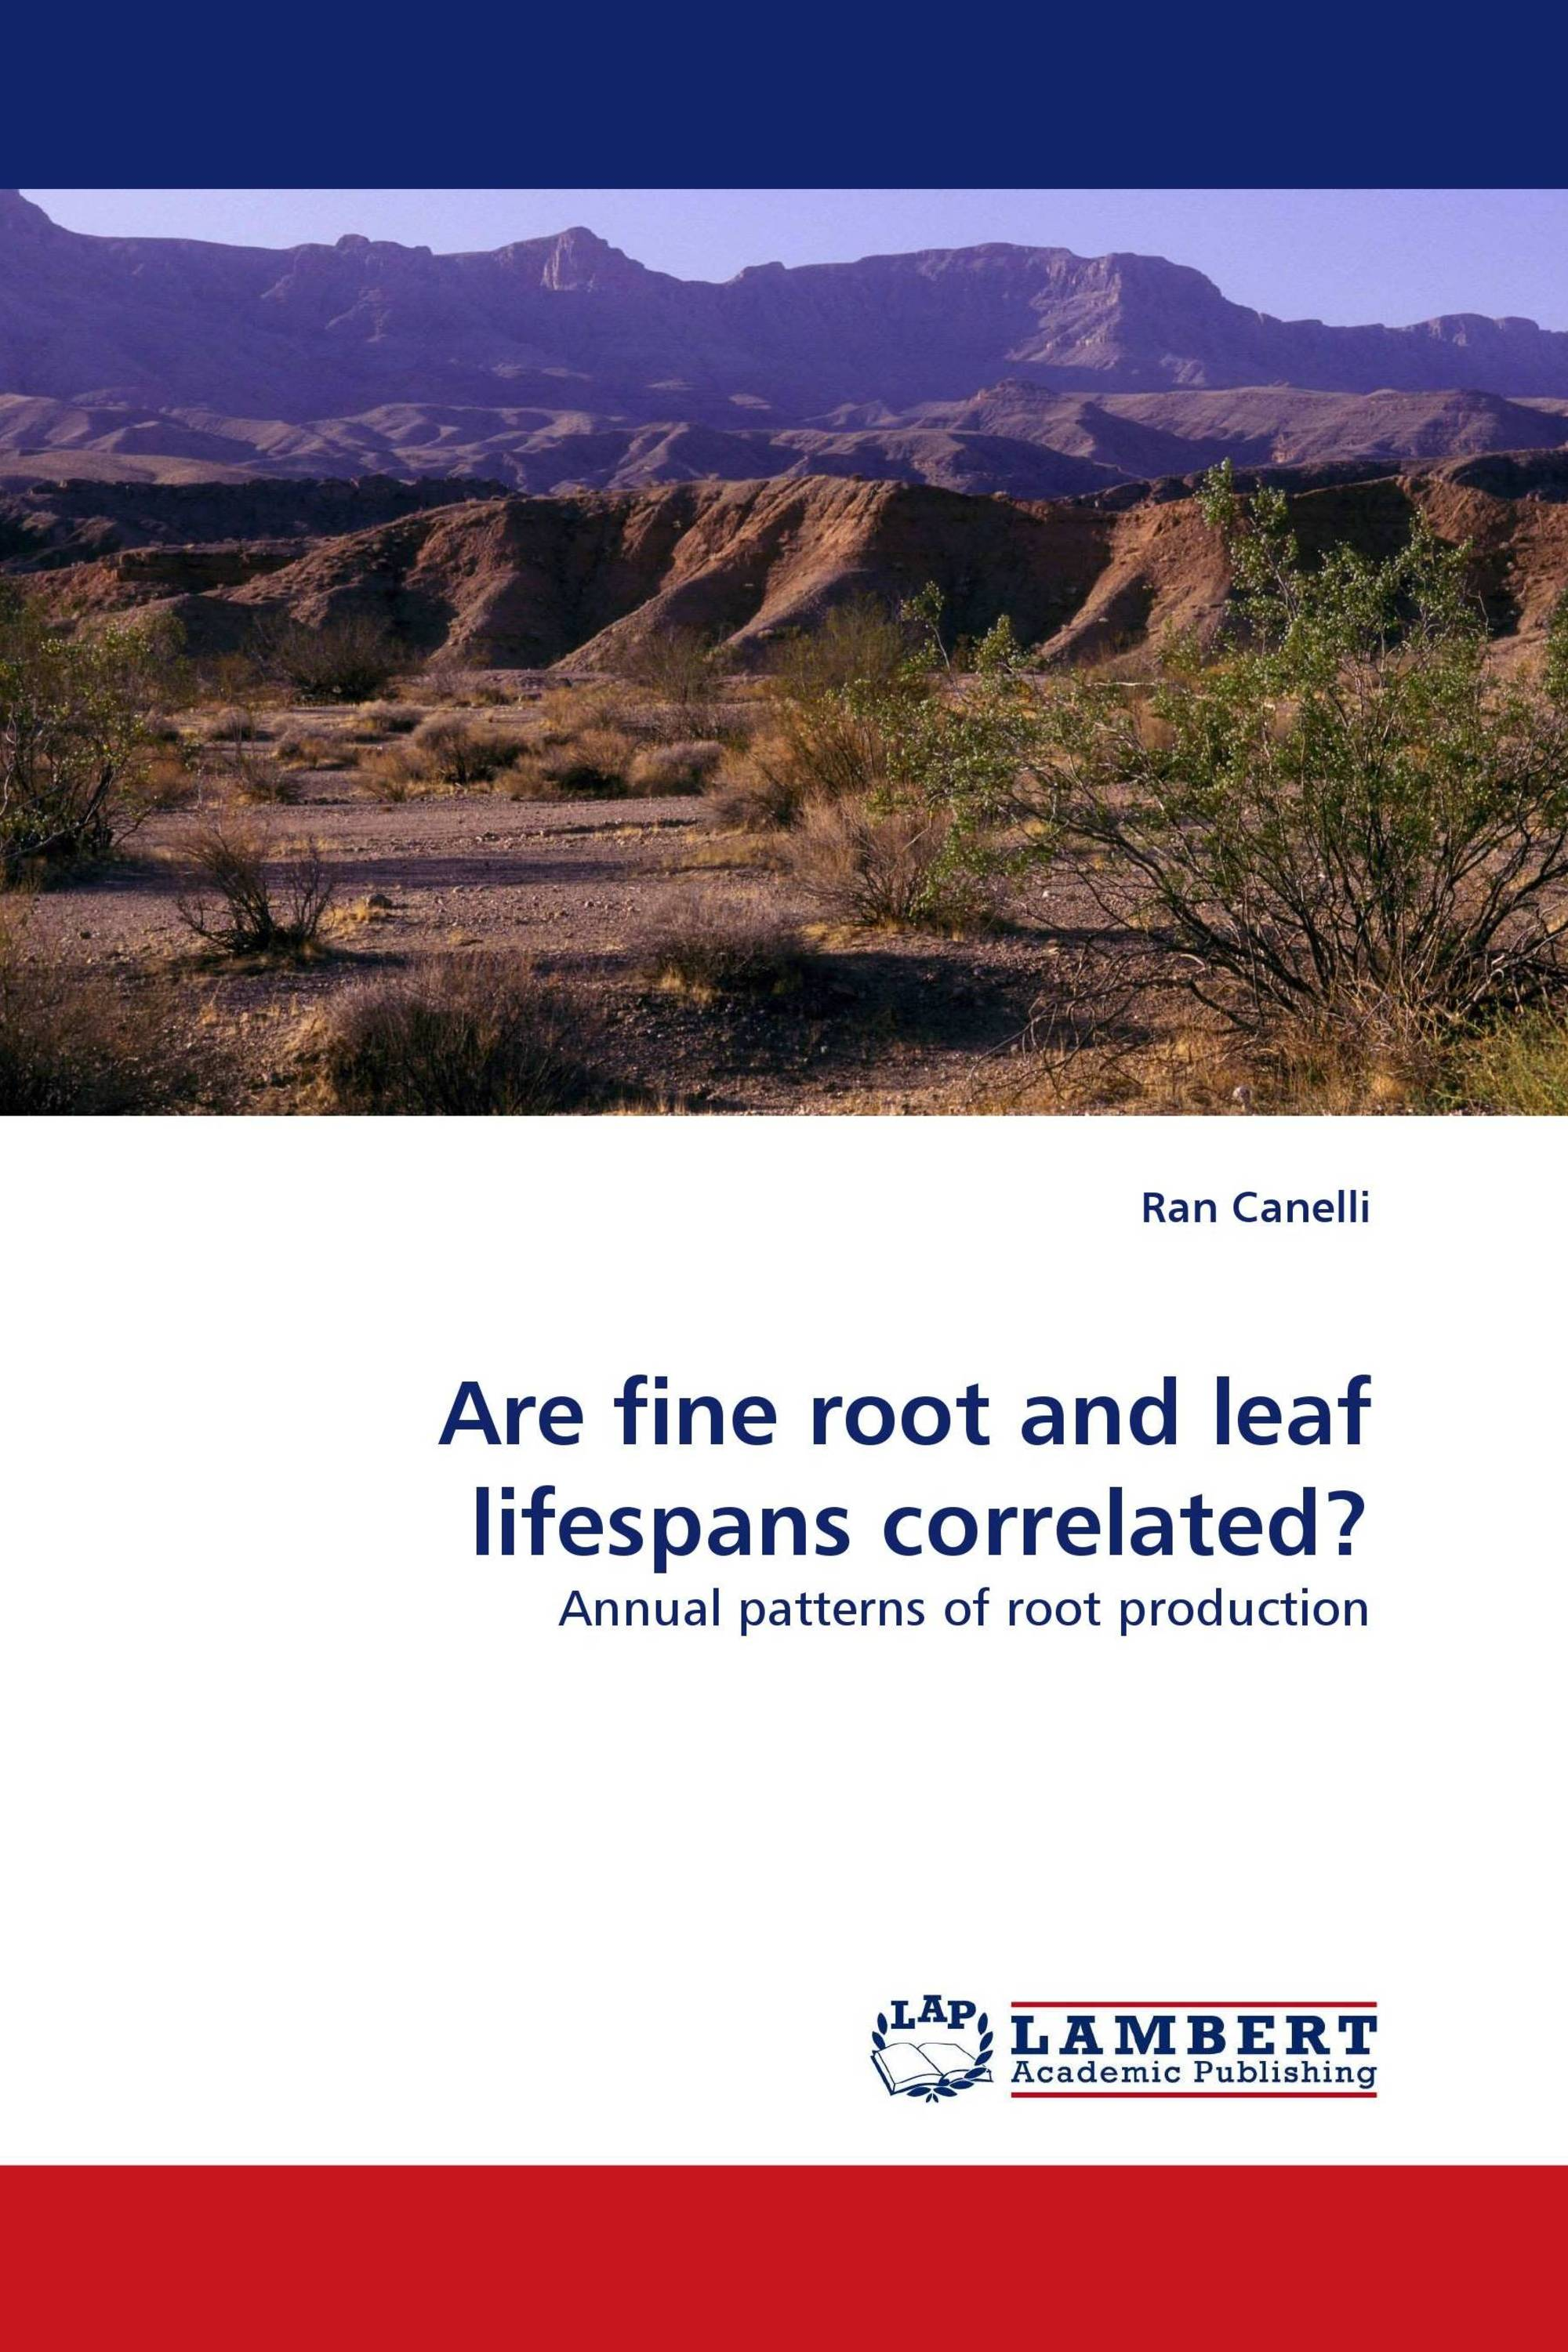 Are fine root and leaf lifespans correlated?